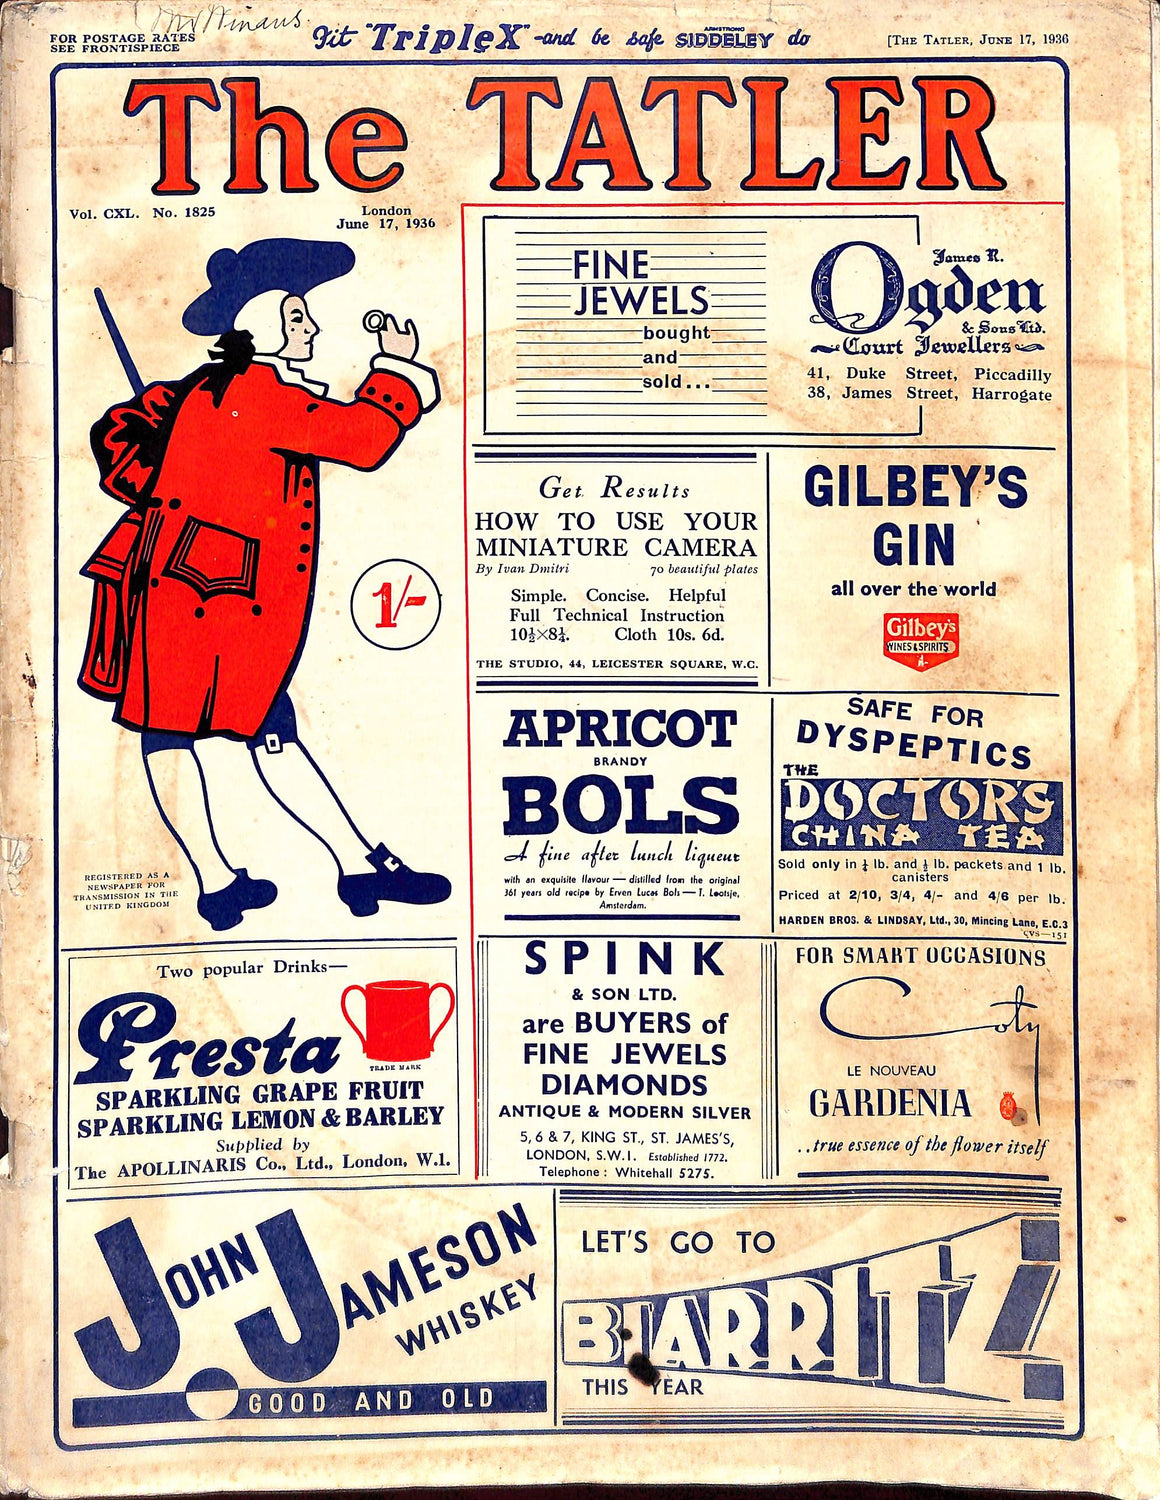 The Tatler: June 17, 1936 (SOLD)